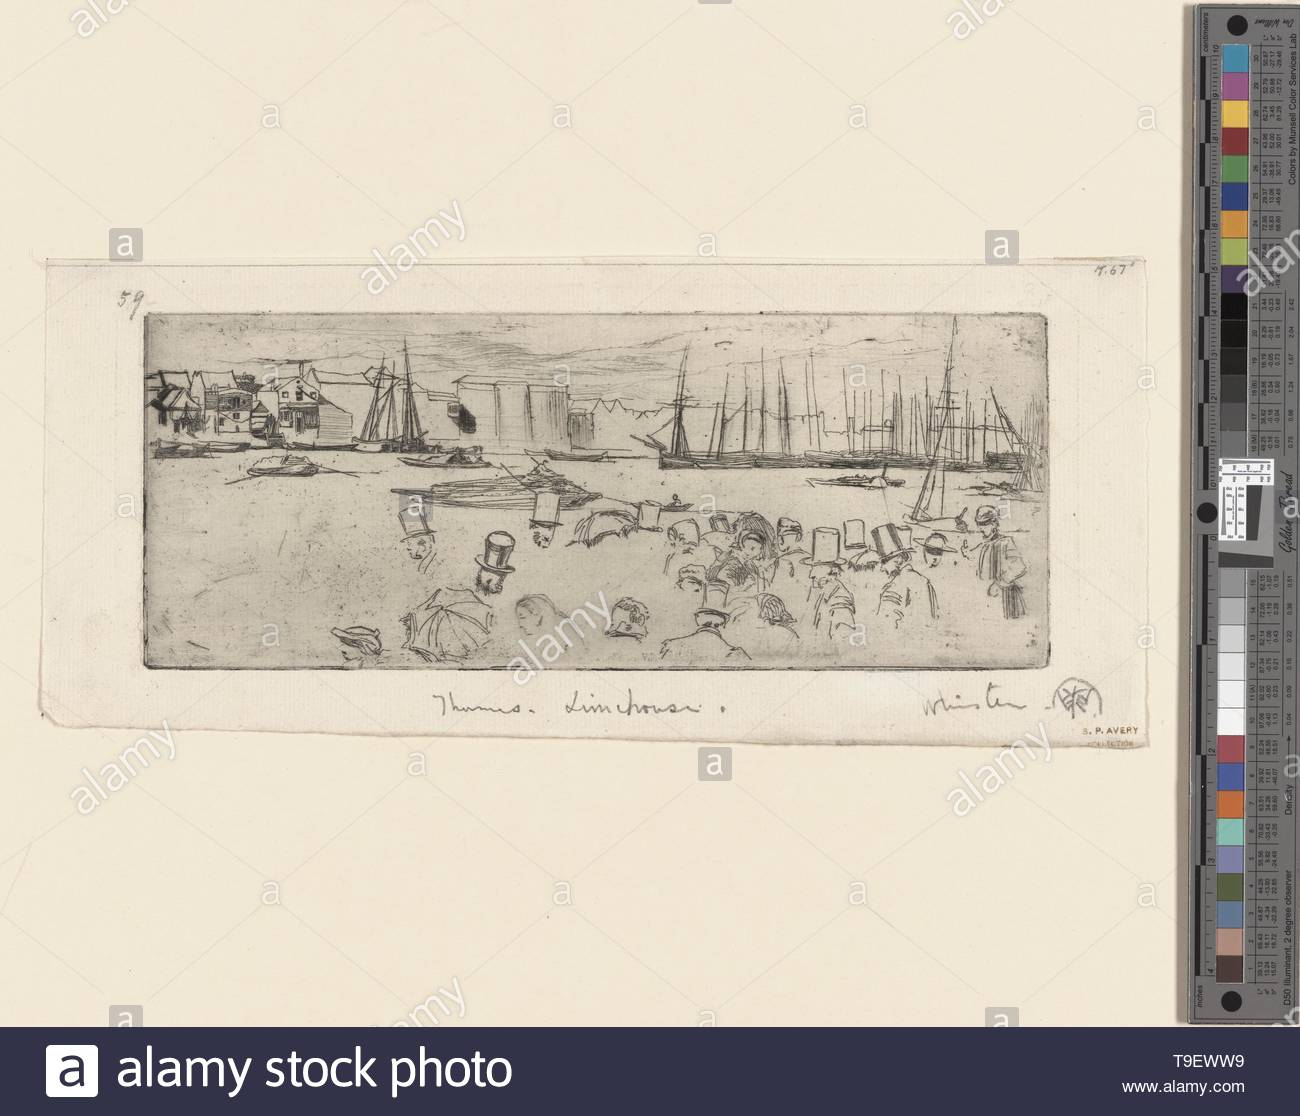 Whistler,JamesMcNeill(1834-1903)-The pennyboat - Stock Image